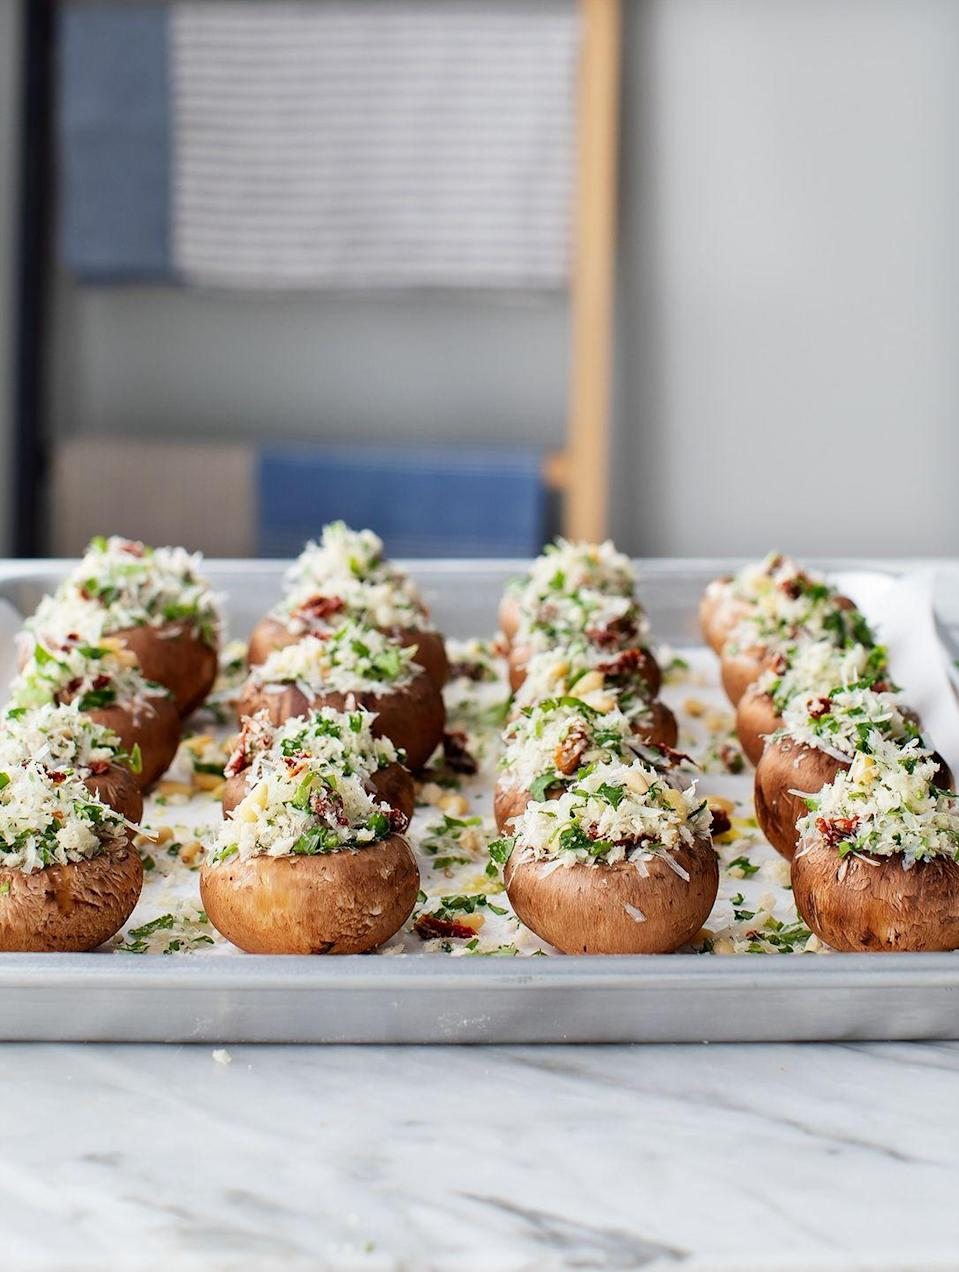 """<p>This delectable bite all but invented the concept of an hors d'oeuvre. We love how Jeanine Donofrio creates a hearty filling with canned sun-dried tomatoes; this addition will elevate your appetizer to icon status. </p><p><em><em><a href=""""https://www.loveandlemons.com/stuffed-mushrooms/"""" rel=""""nofollow noopener"""" target=""""_blank"""" data-ylk=""""slk:Get the recipe from Love and Lemons »"""" class=""""link rapid-noclick-resp"""">Get the recipe from Love and Lemons »</a></em></em> </p>"""